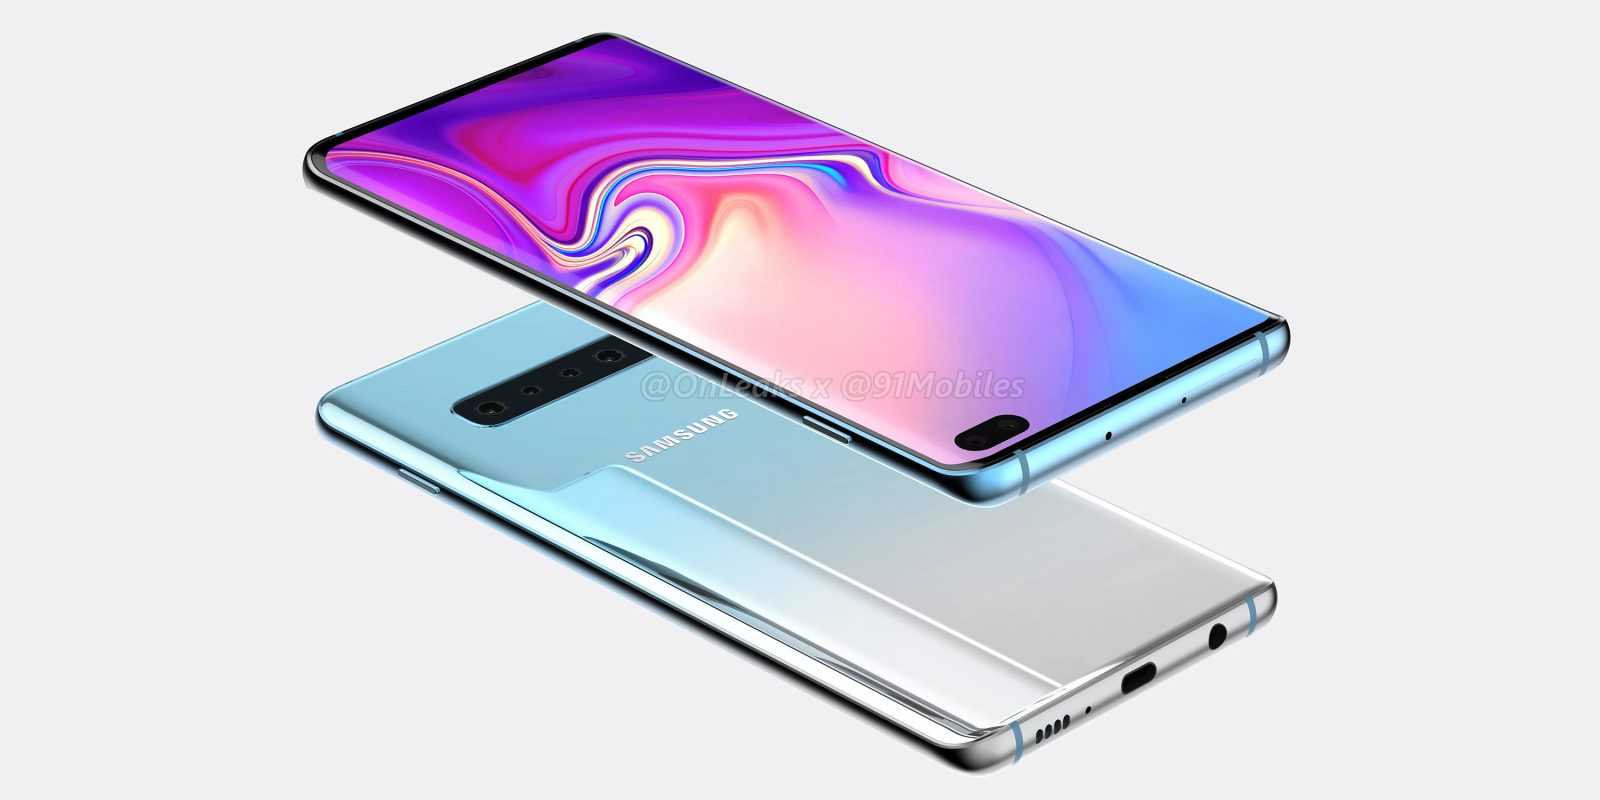 Samsung Galaxy S10 launch date may be Feb 20th, report